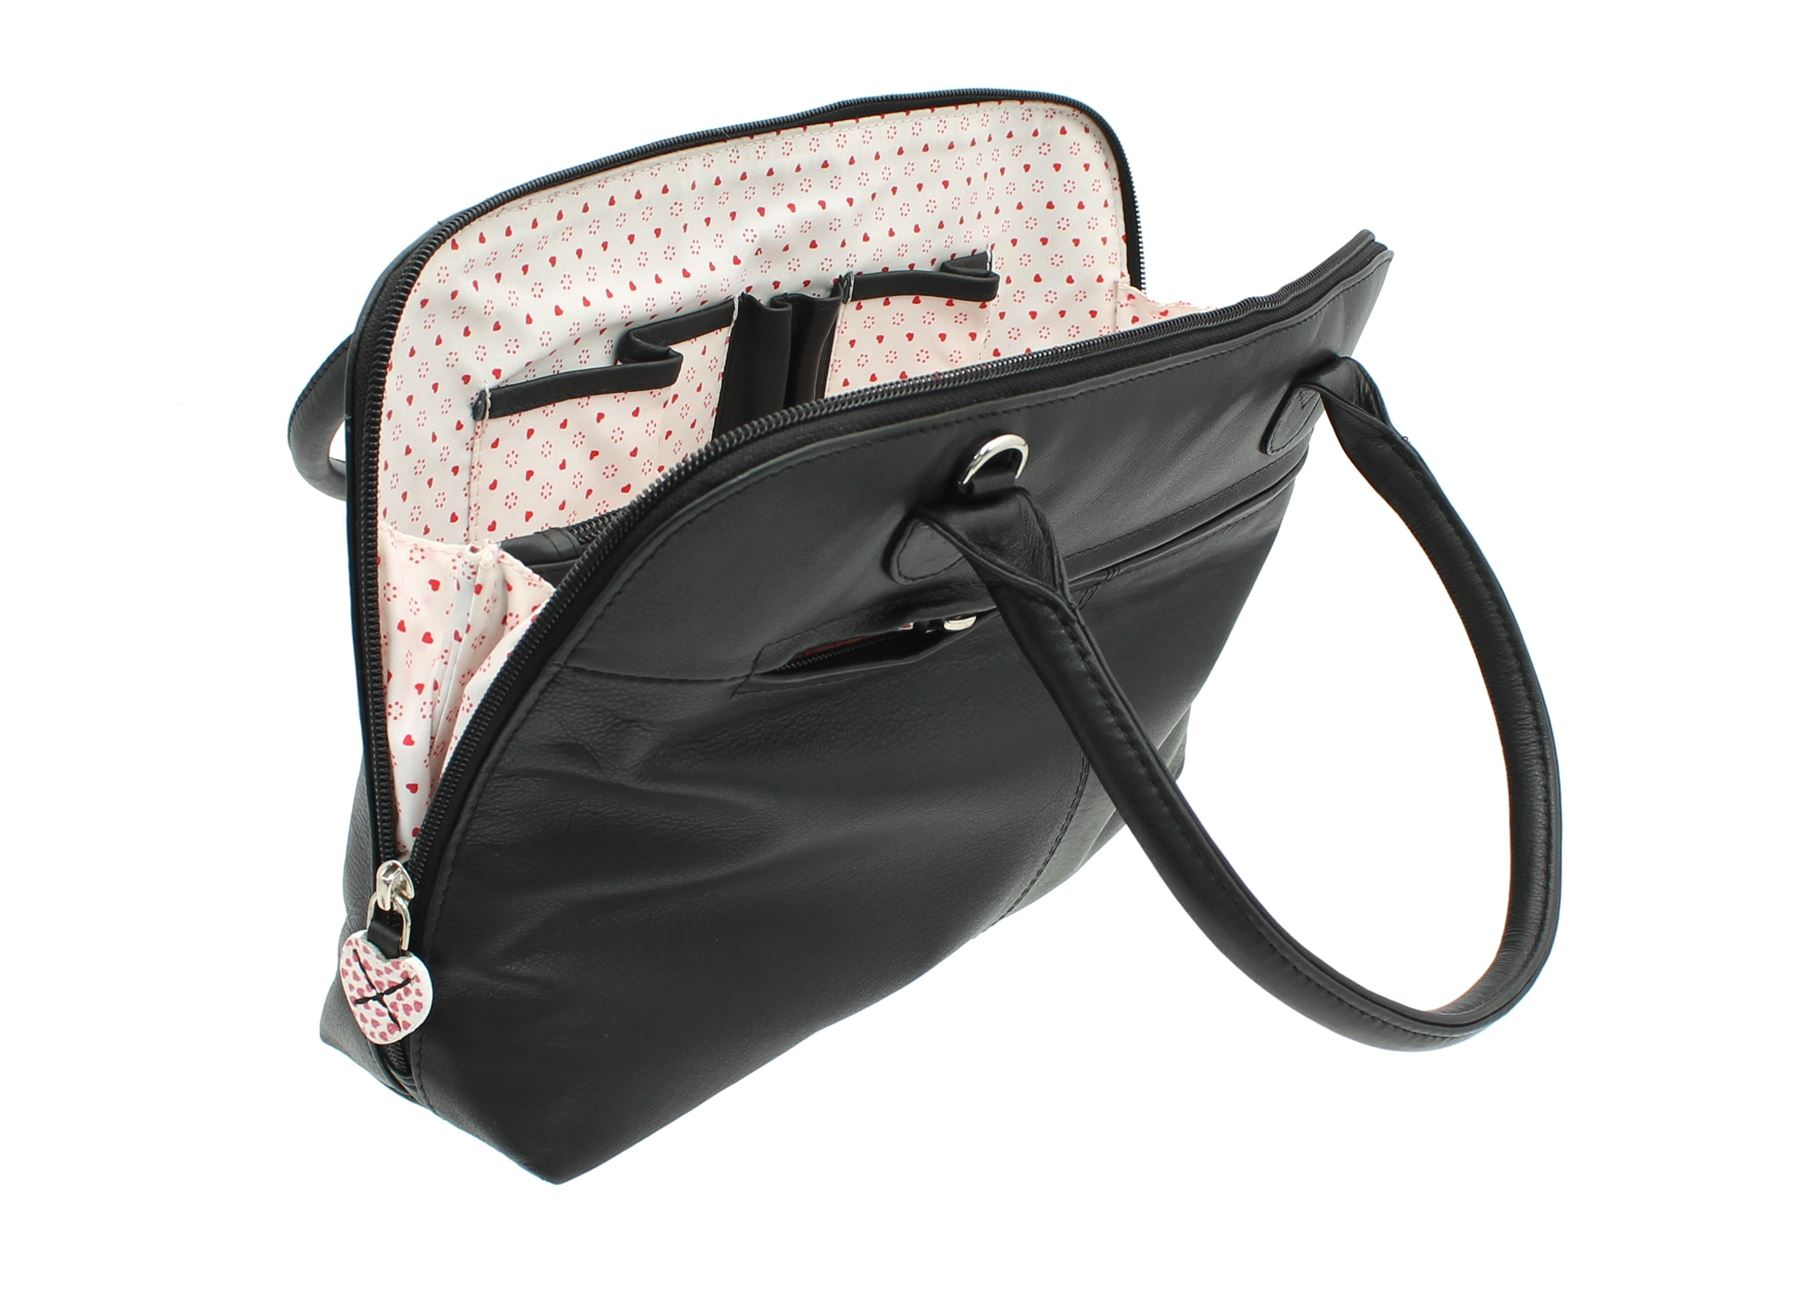 Mala Leather LUCY Collection Soft Leather Grab Bag With Shoulder Strap 750/_30